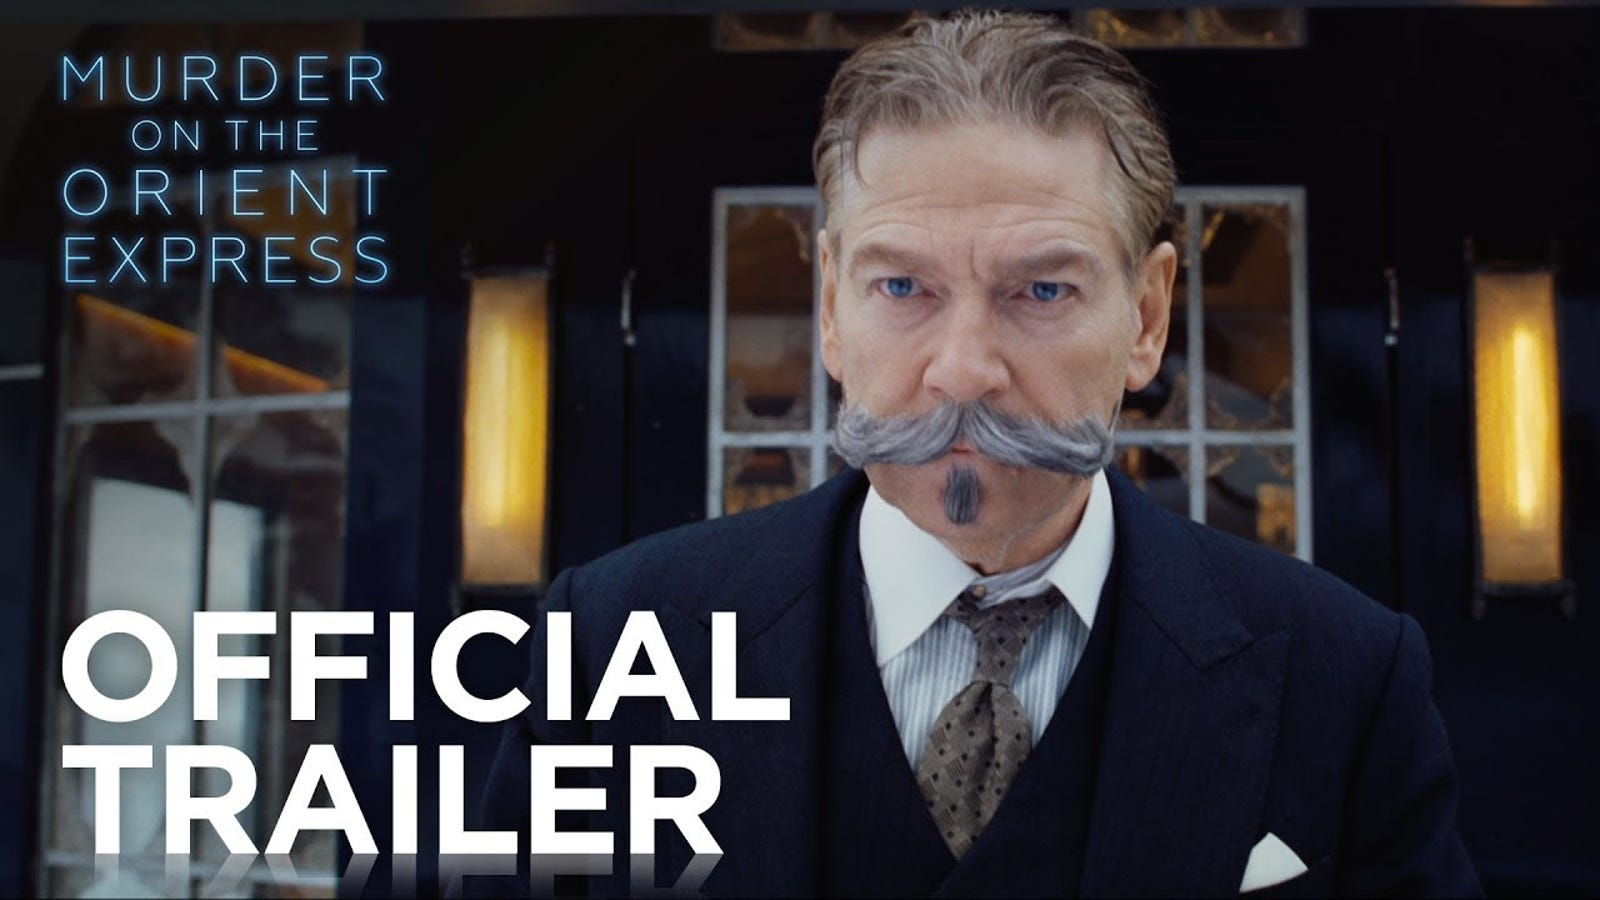 Watch The Mustachio D Trailer For Murder On The Orient Express